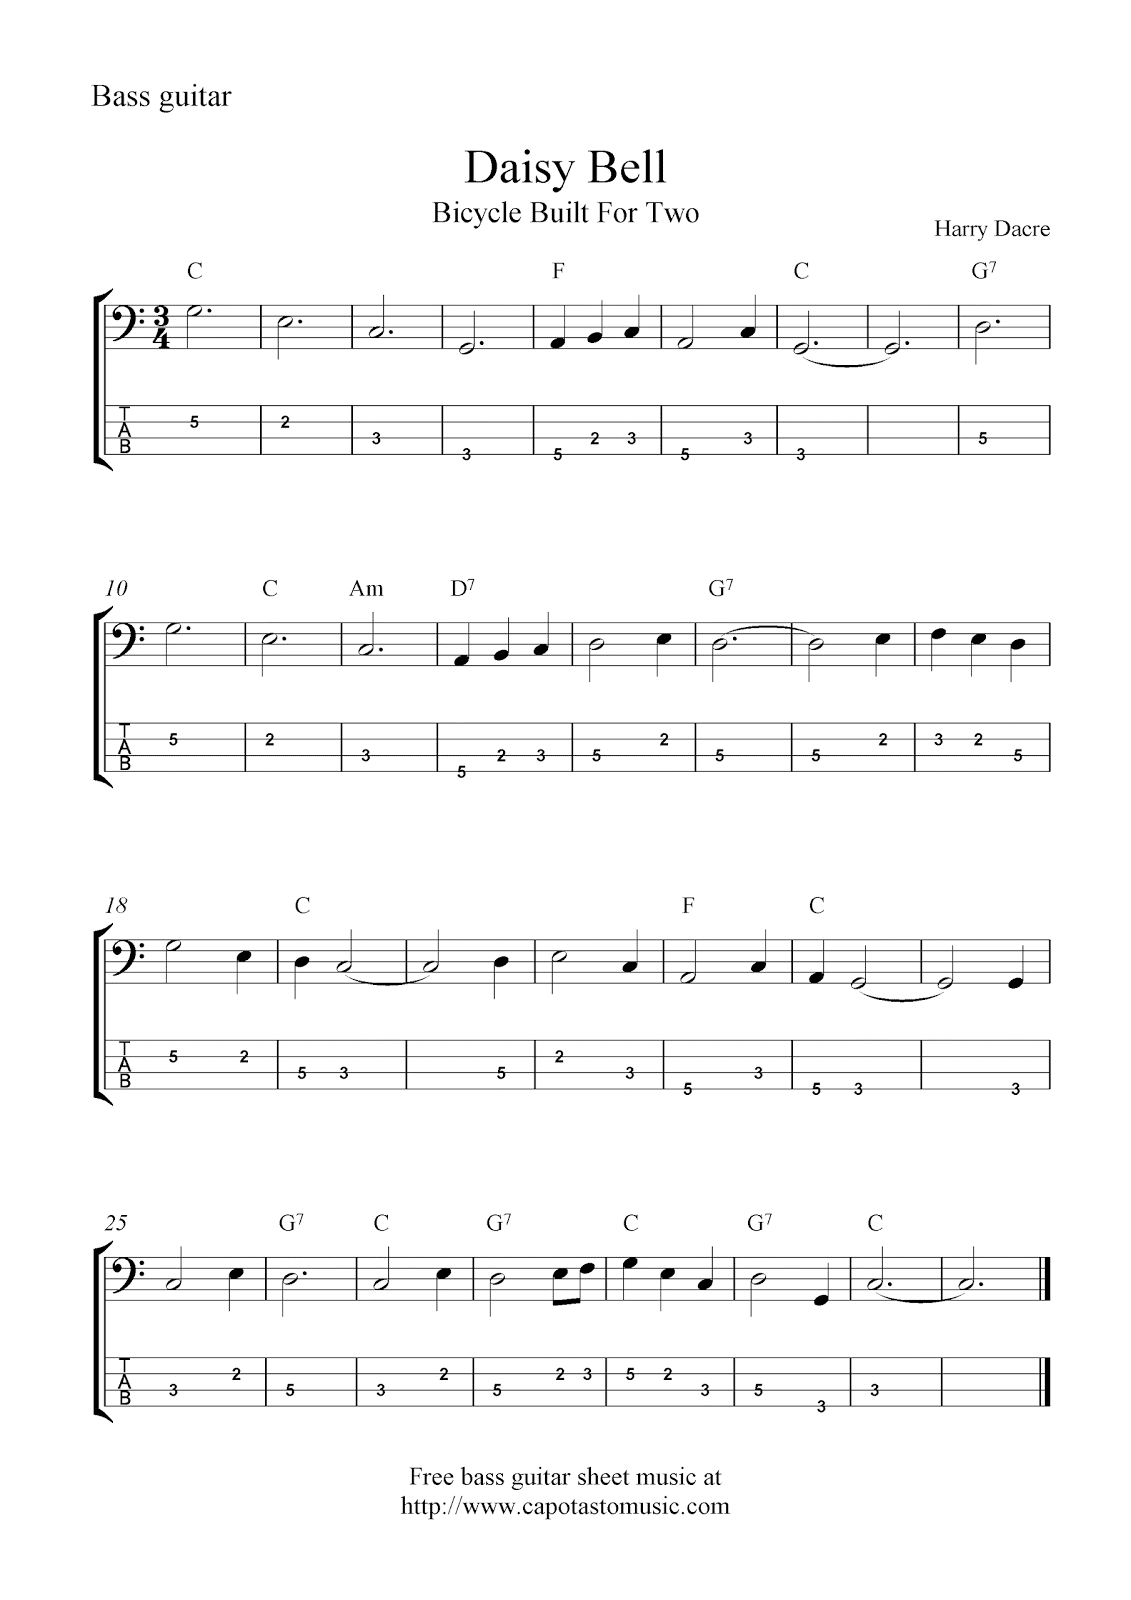 bass guitar sheet music how to read